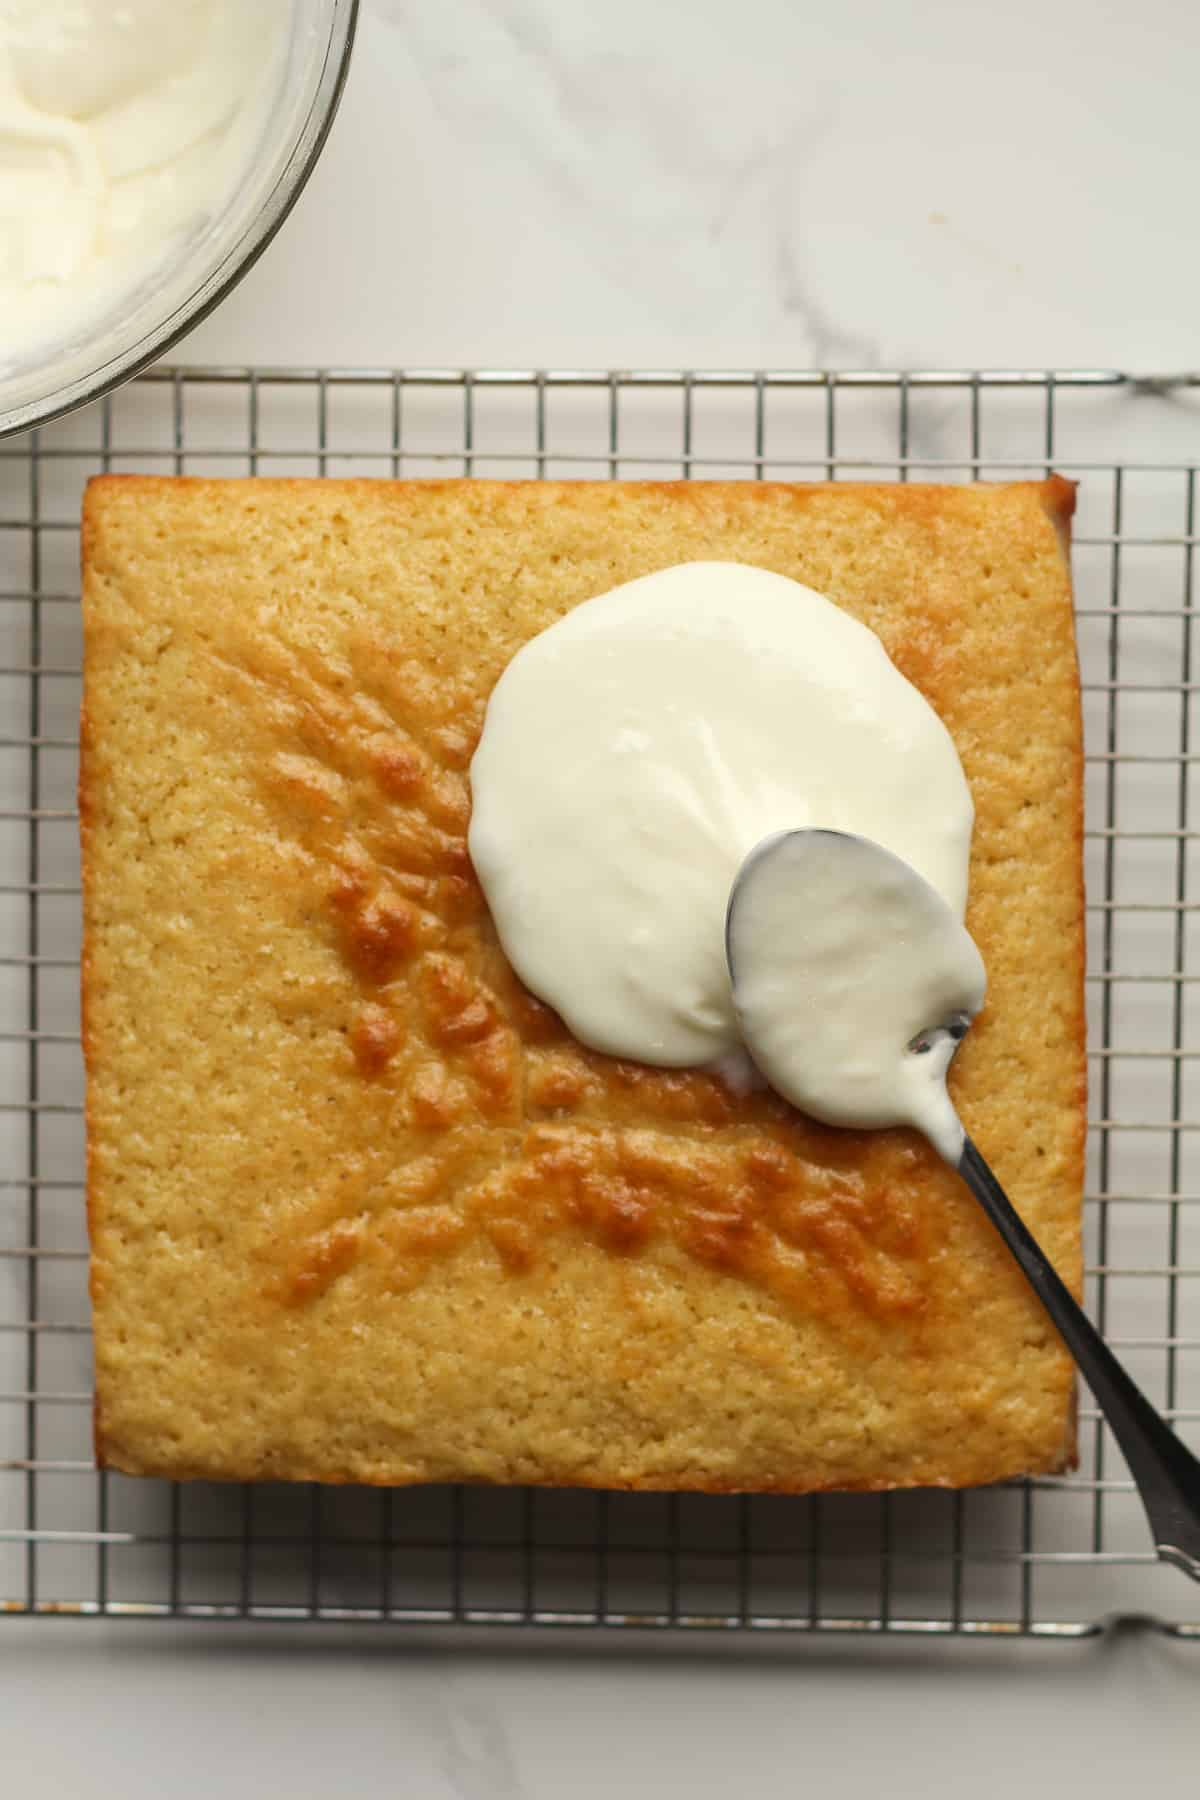 A square lemon cake with some of the frosting on top.